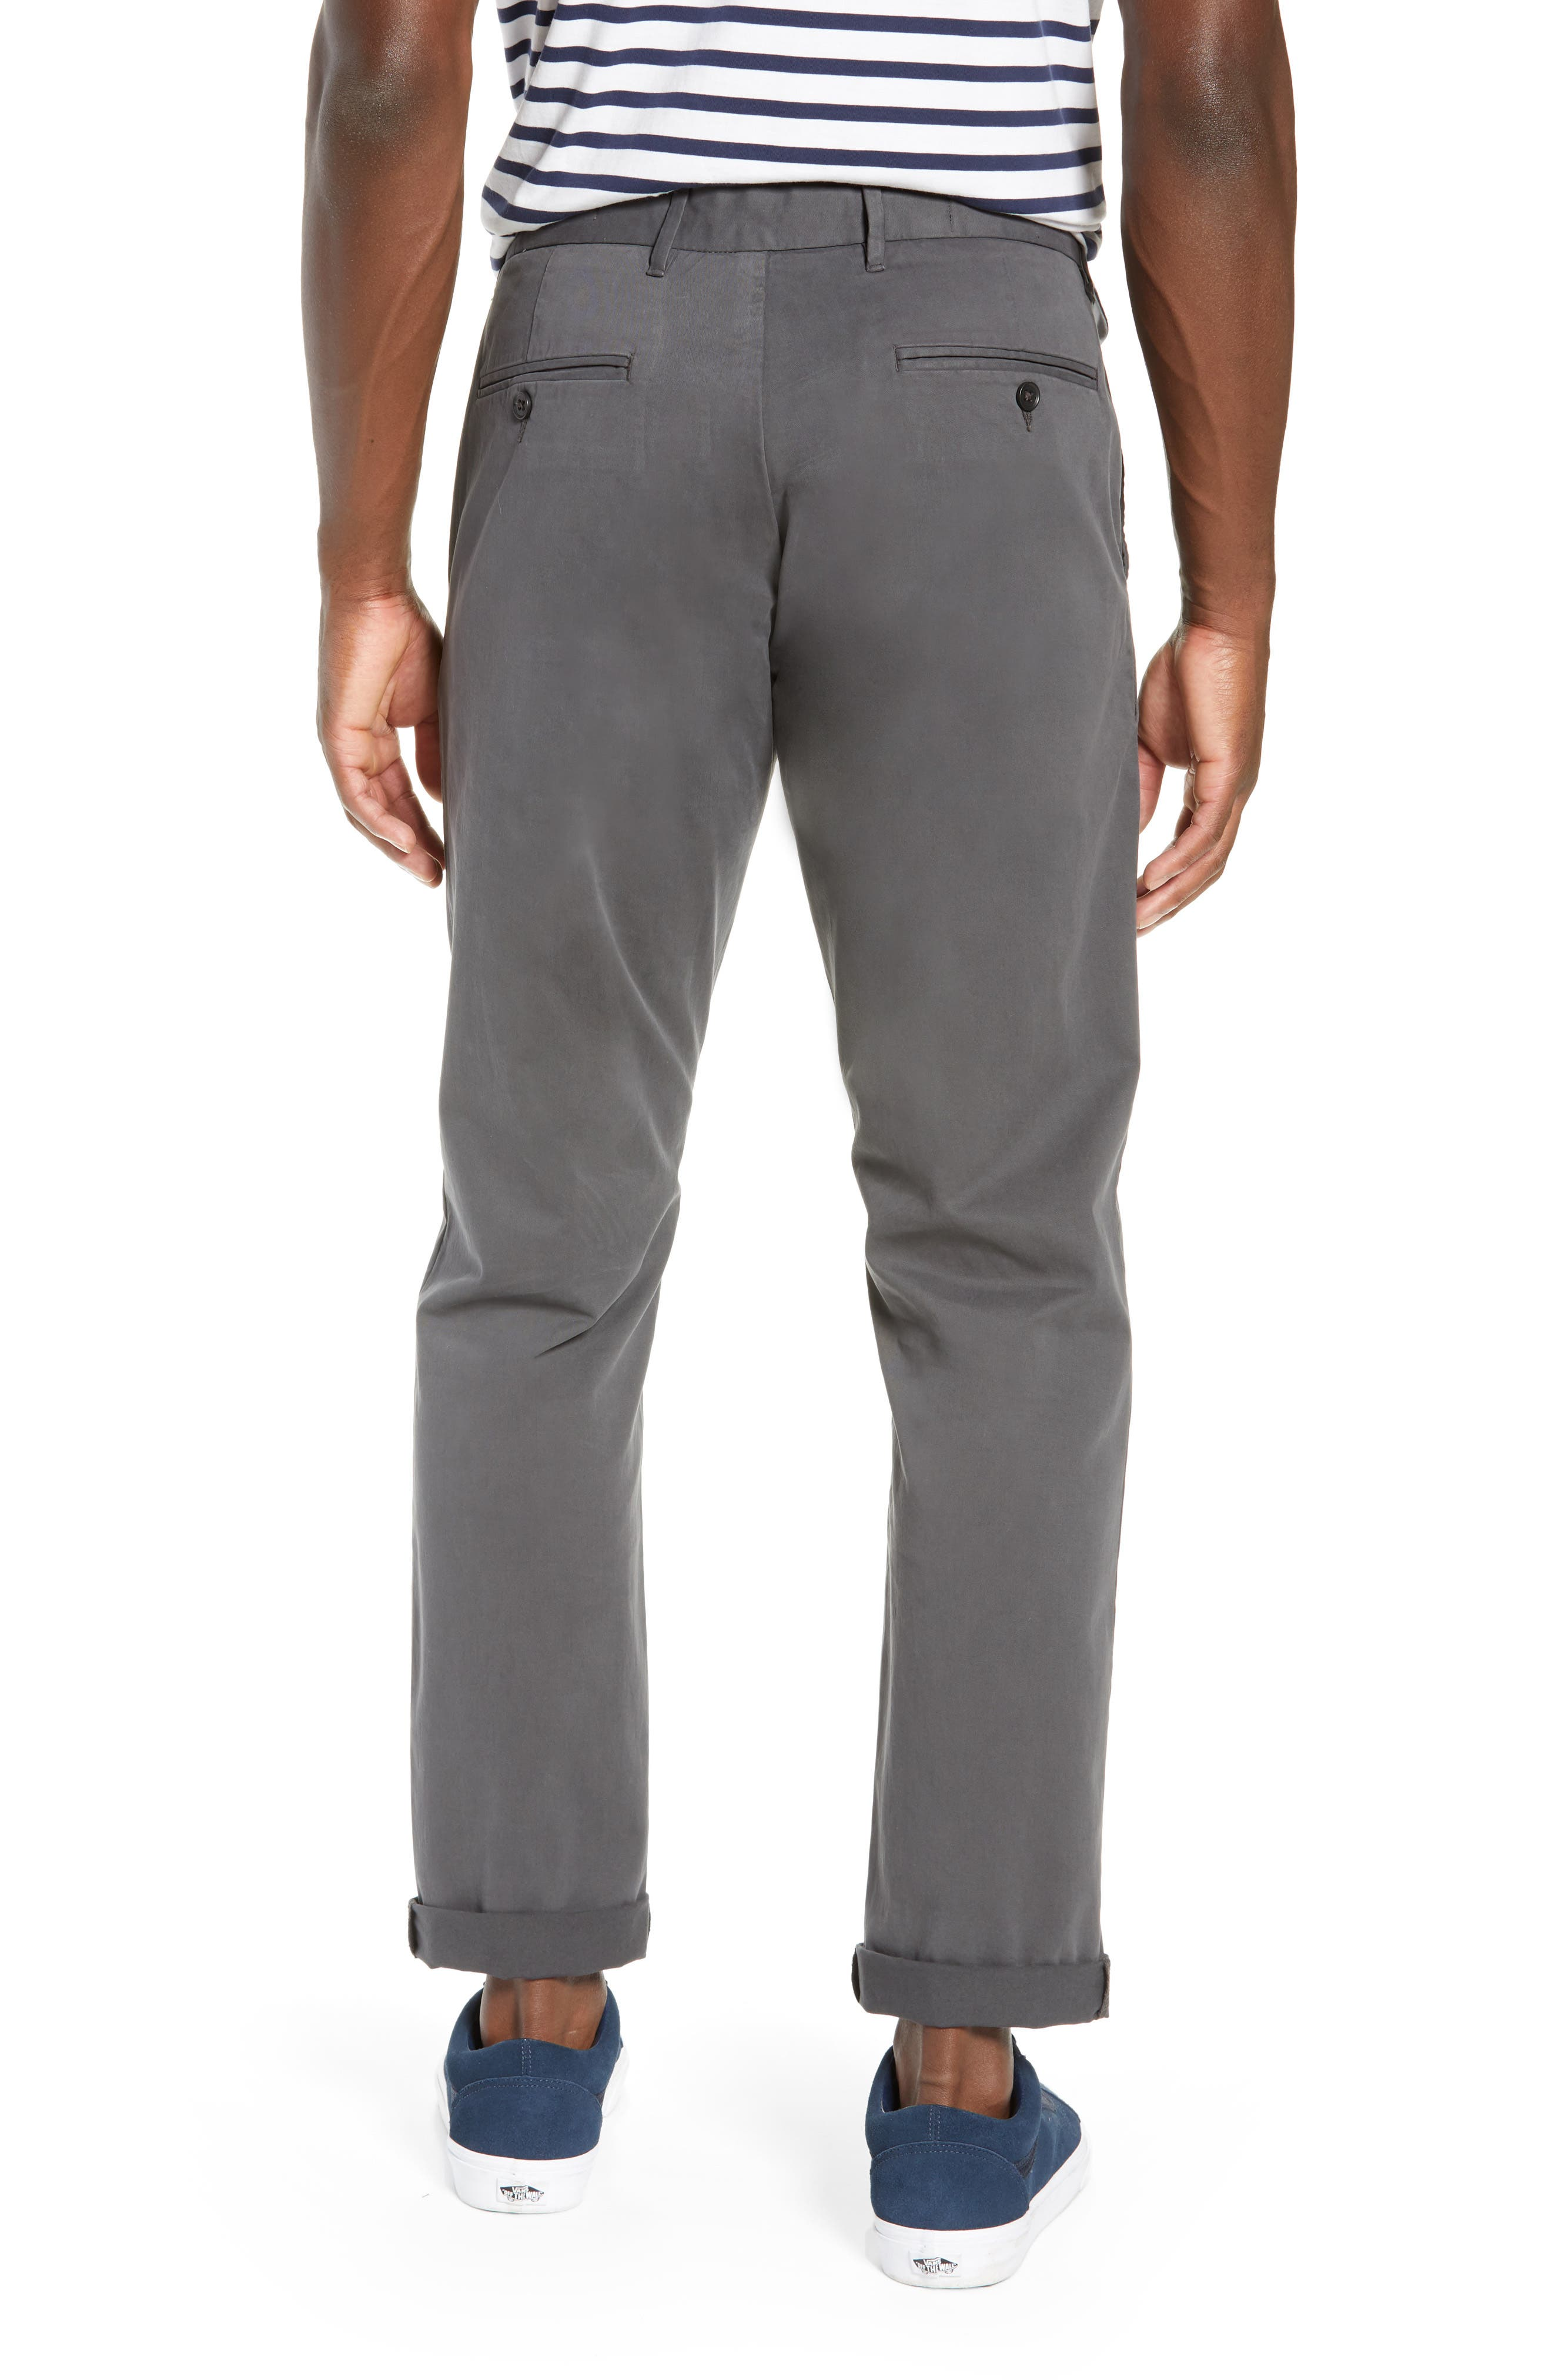 Fremont Flat Front Slim Fit Stretch Chino Pants,                             Alternate thumbnail 2, color,                             GREY ONYX